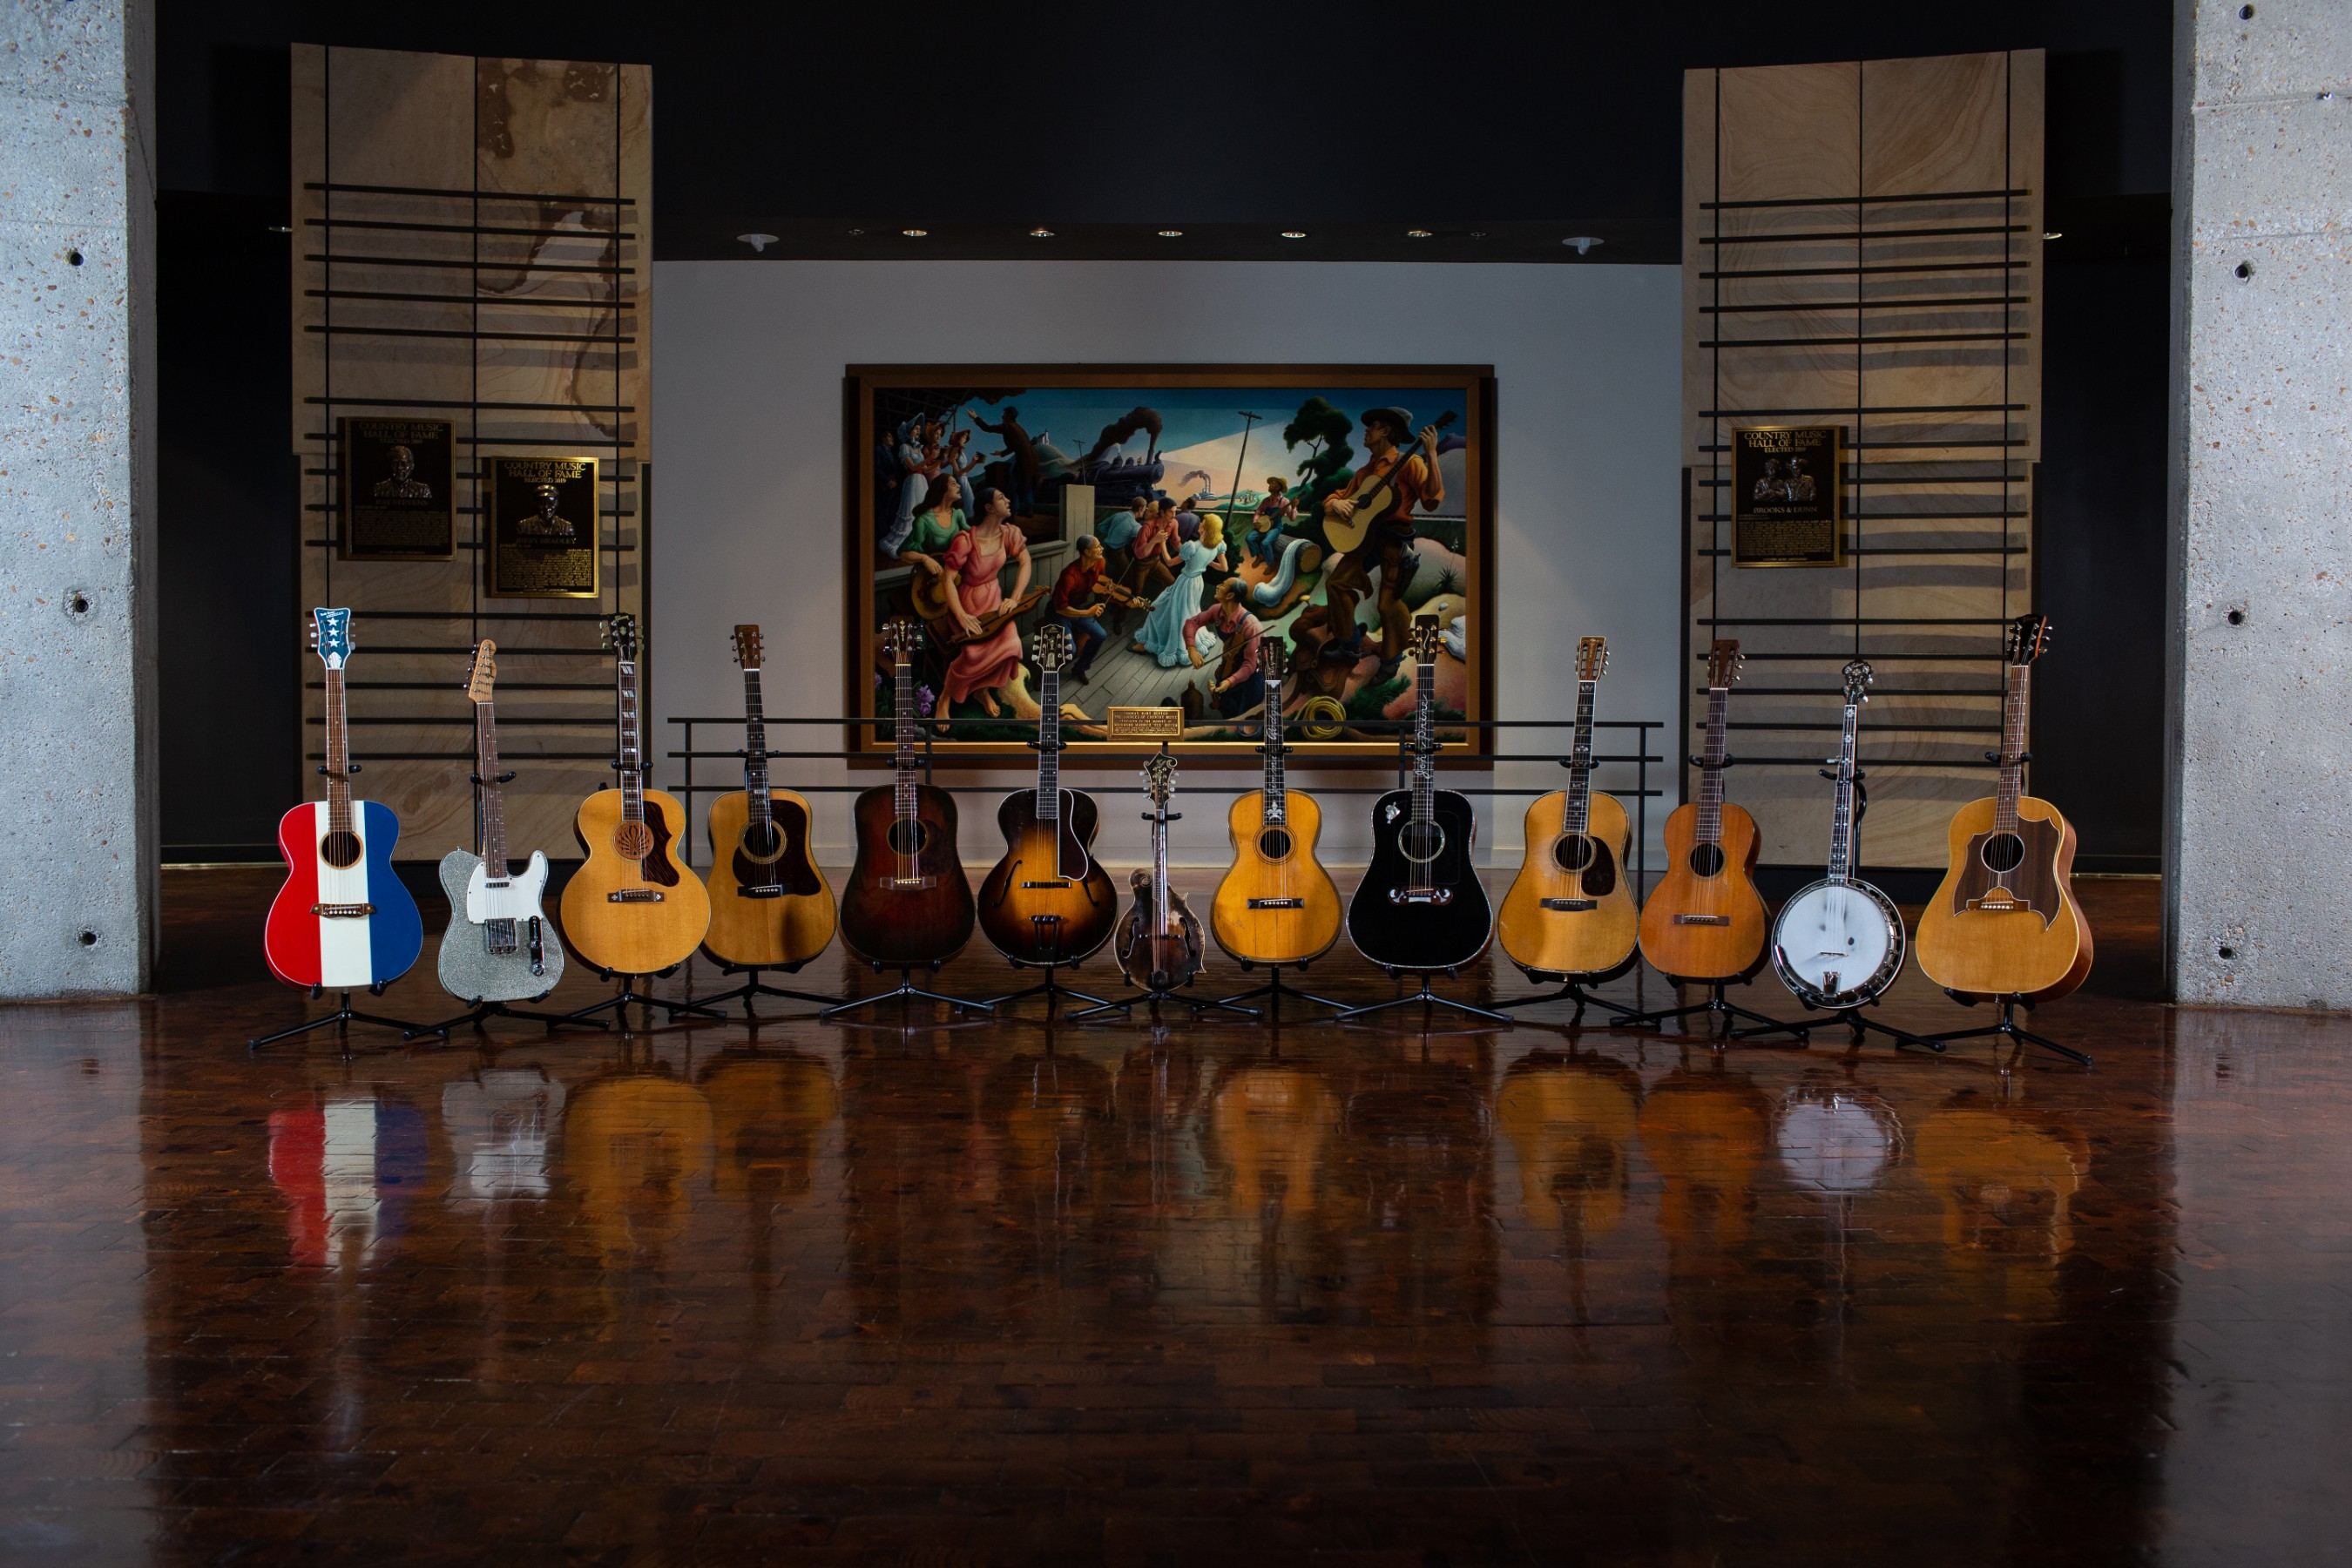 BIG NIGHT (At the Museum), a fundraising event for the Country Music Hall of Fame and Museum, pairs historic instruments with some of today's music masters. Photo by Bob Delevante for the Country Music Hall of Fame and Museum.